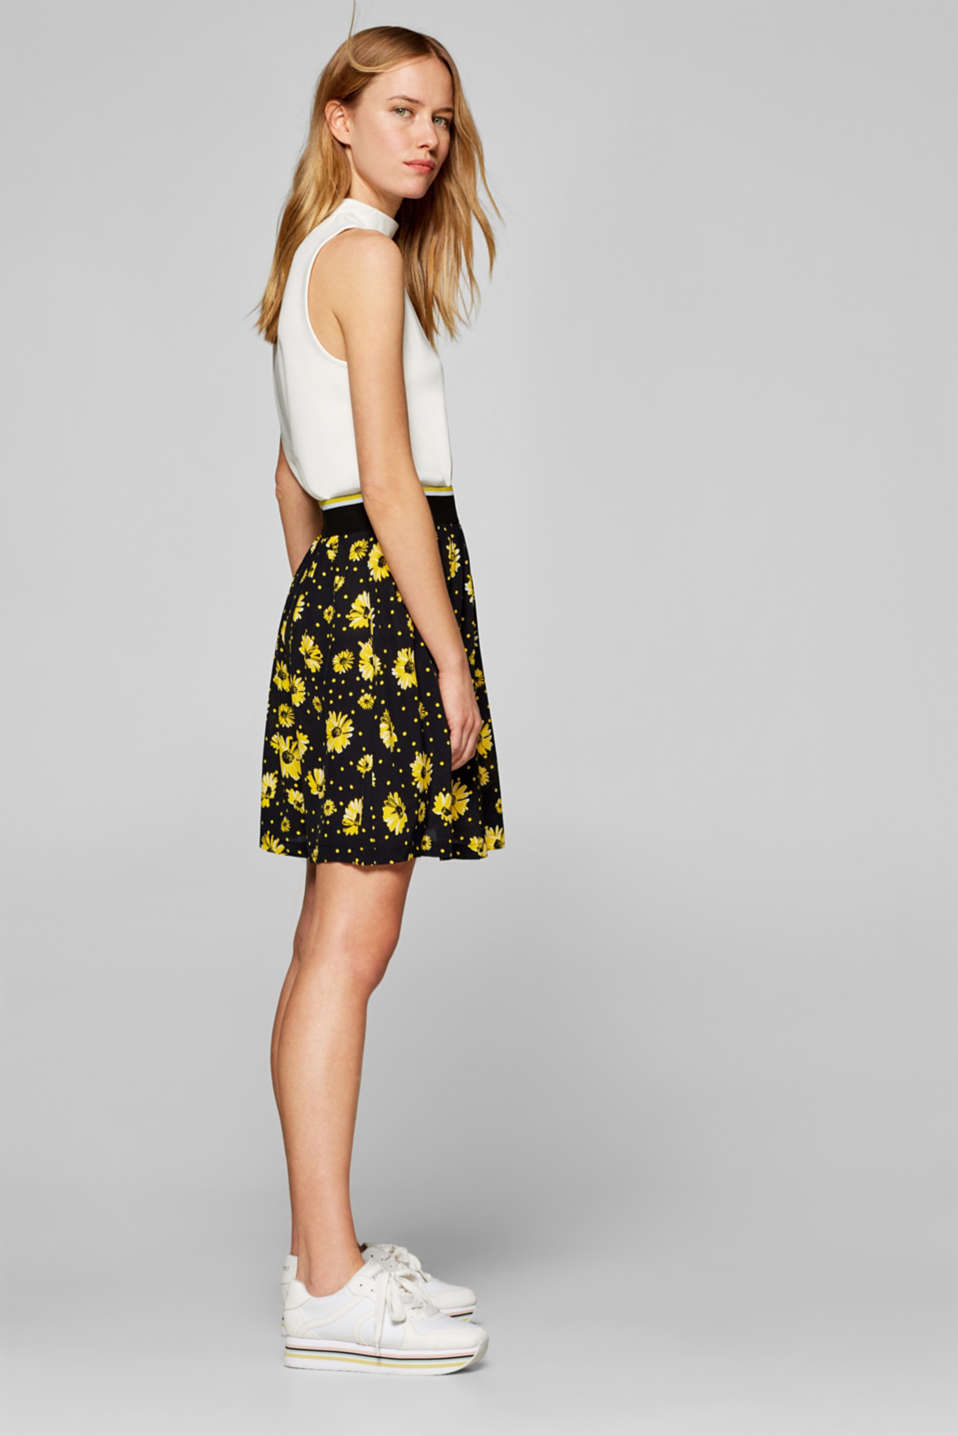 Printed skirt with a striped elasticated waistband